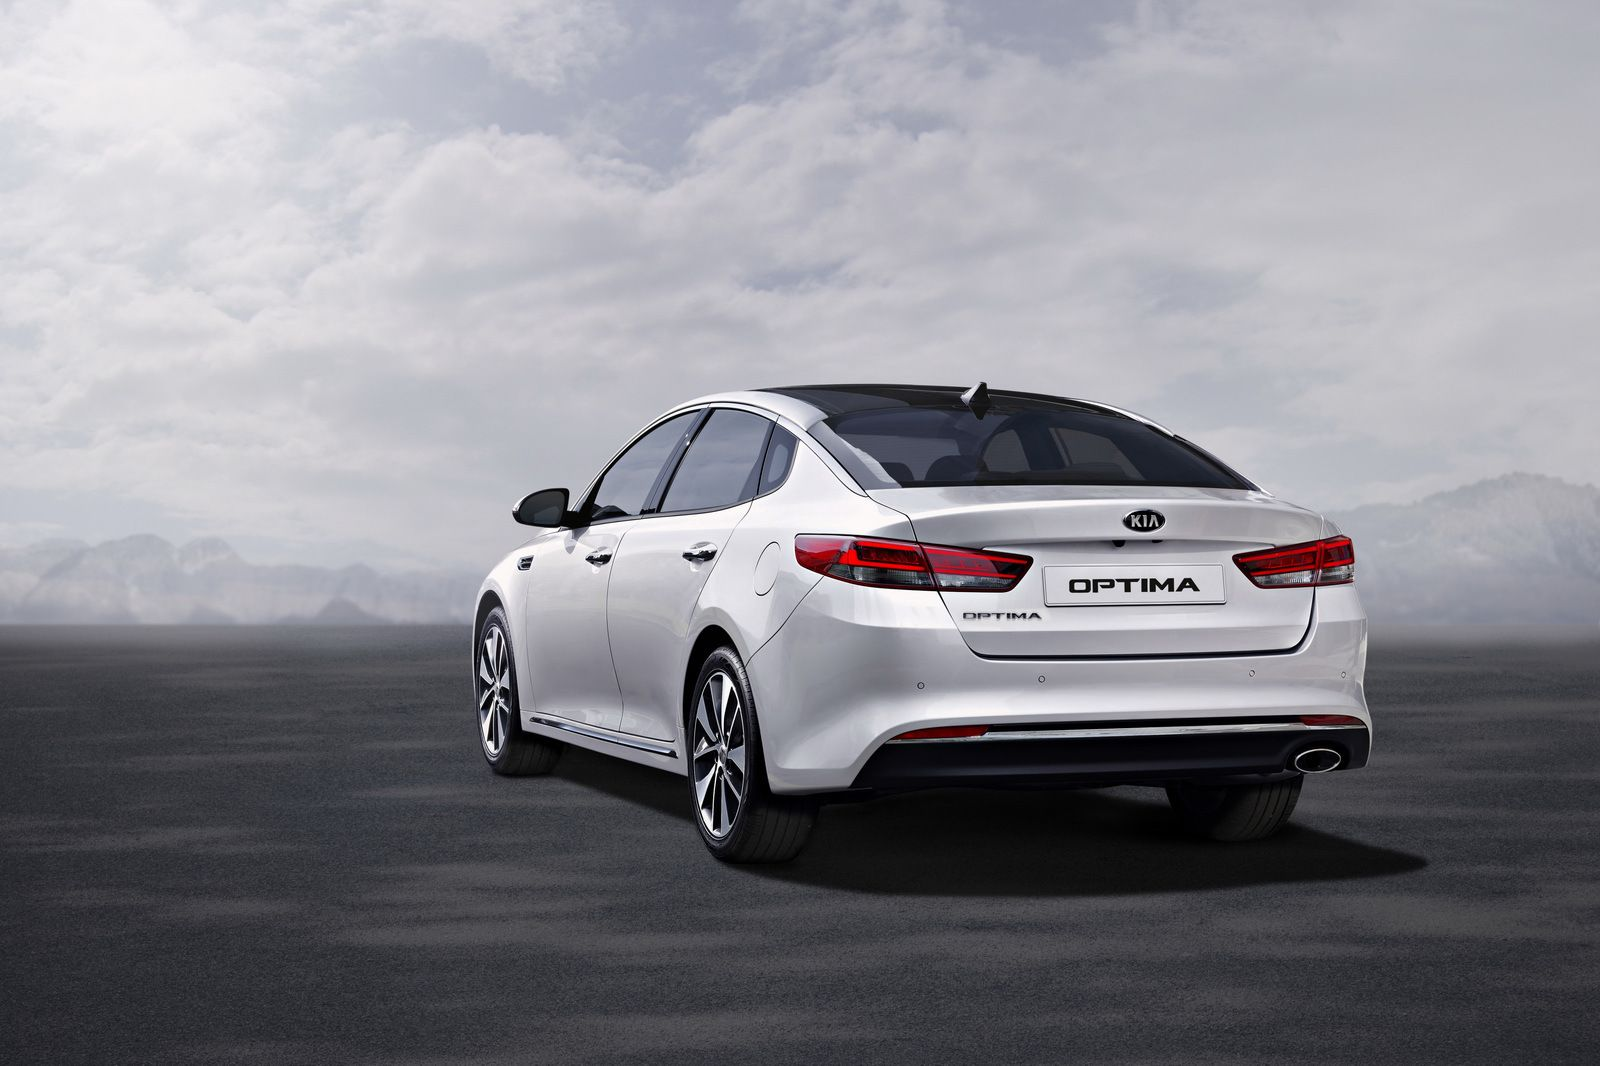 Kia Optima Tf 2016 Full service manual